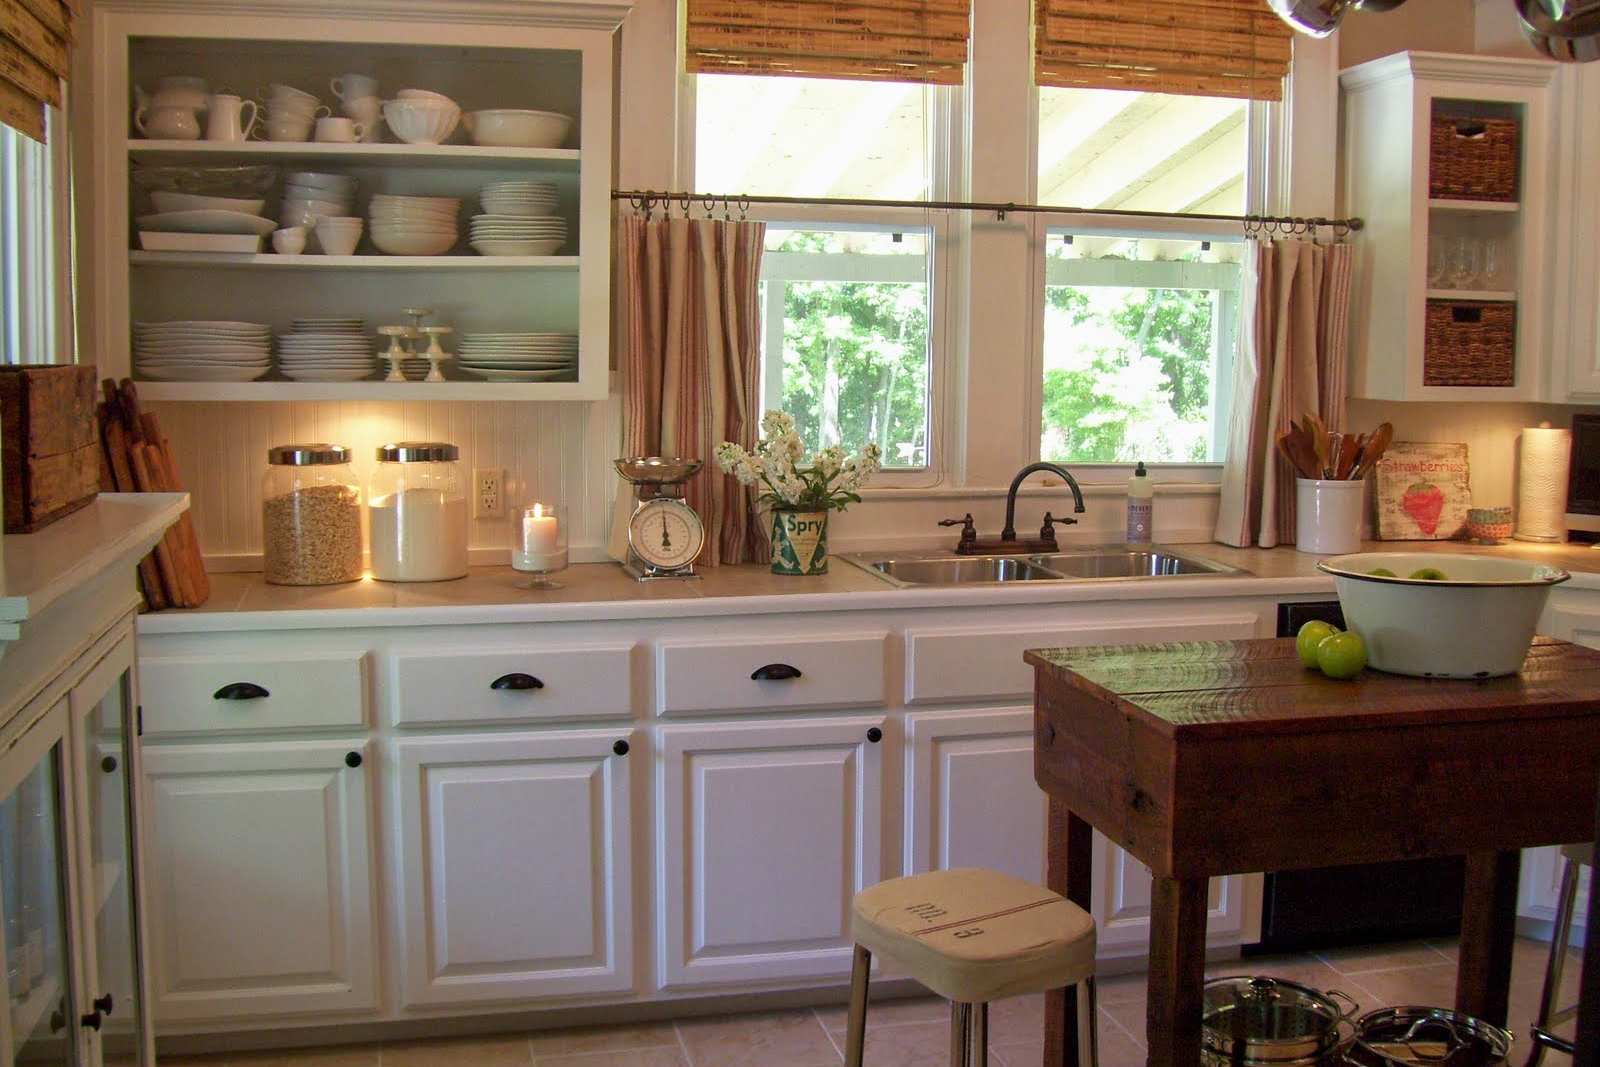 Country Kitchen Remodel Kitchen Remodel Budget Country Kitchen Designs